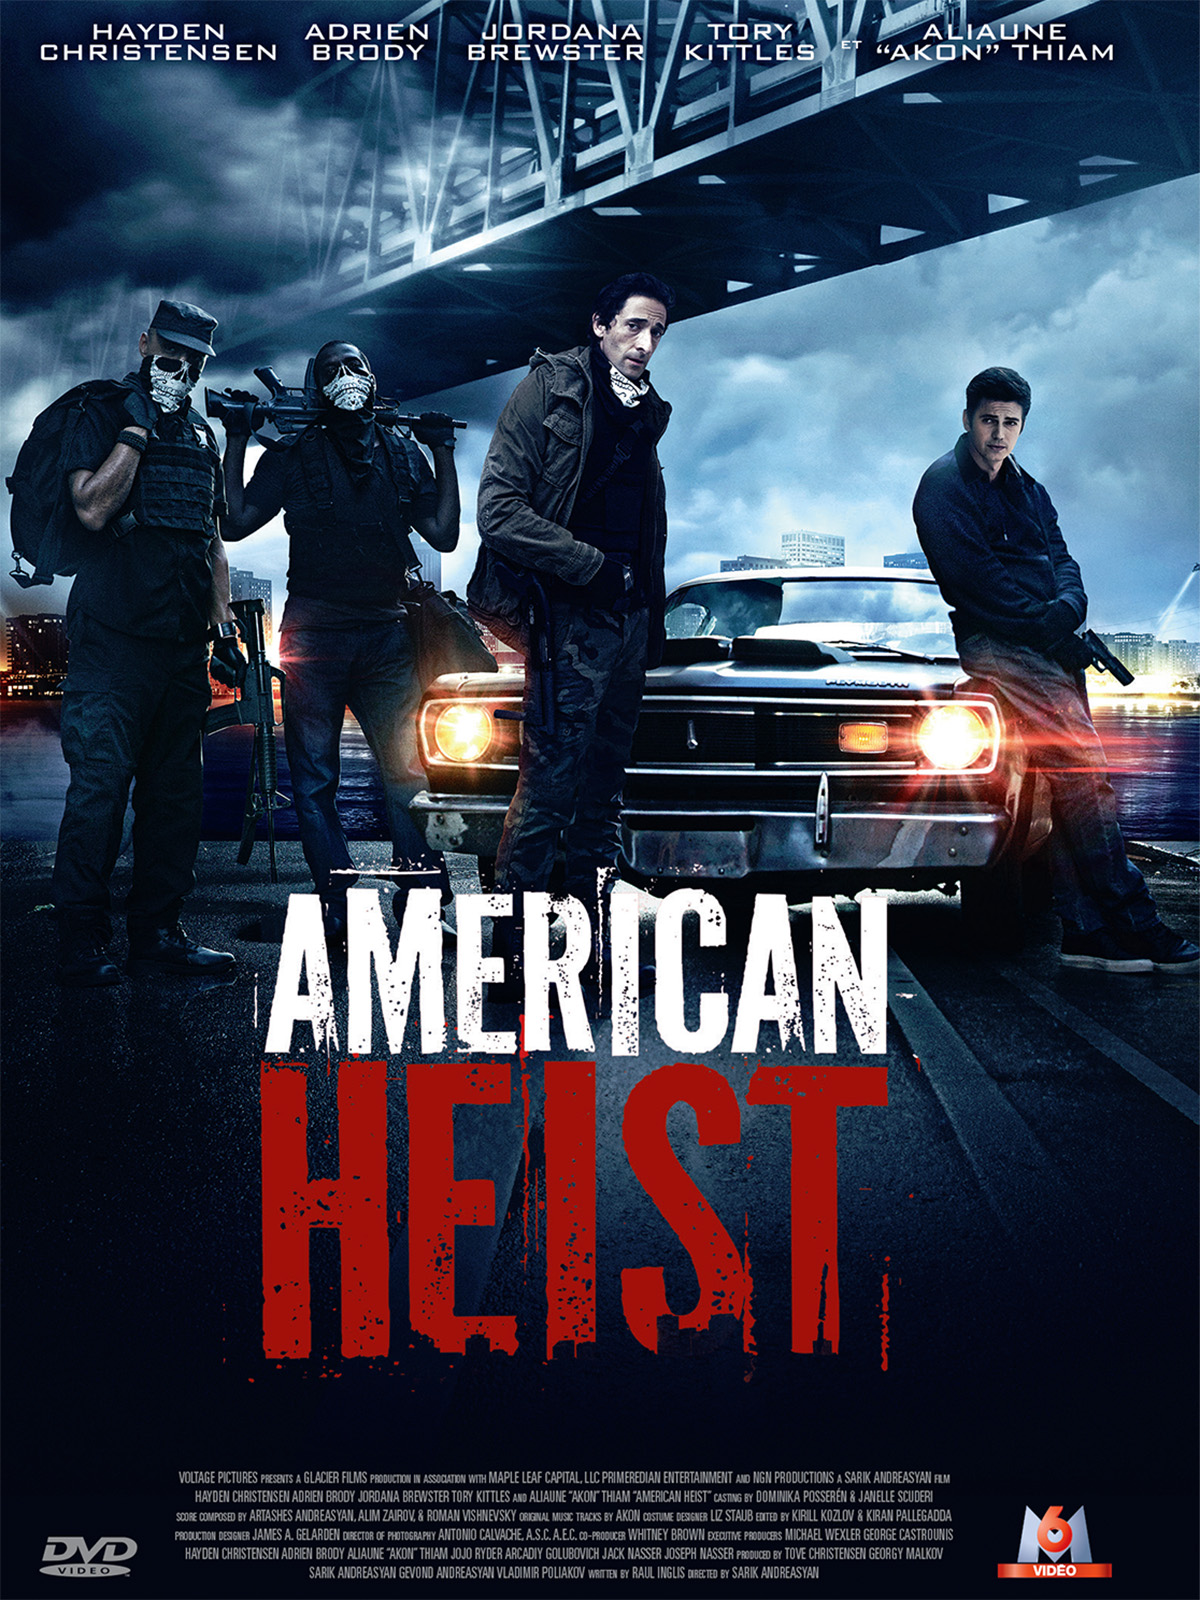 American heist film 2014 allocin for American cuisine film stream